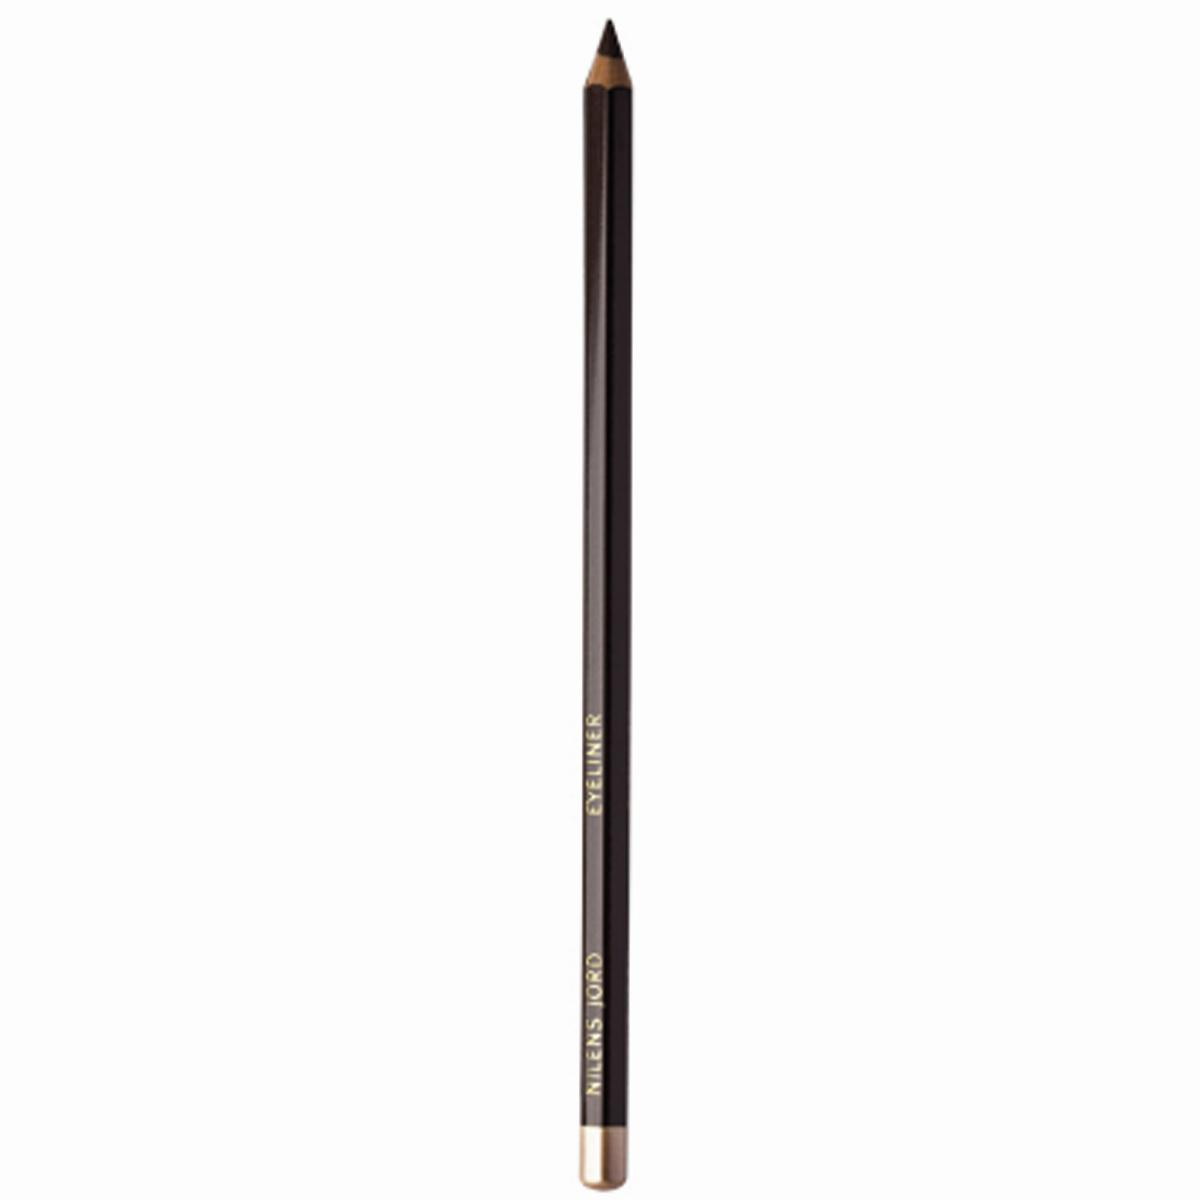 Nilens Jord Brown Eyeliner Pencil